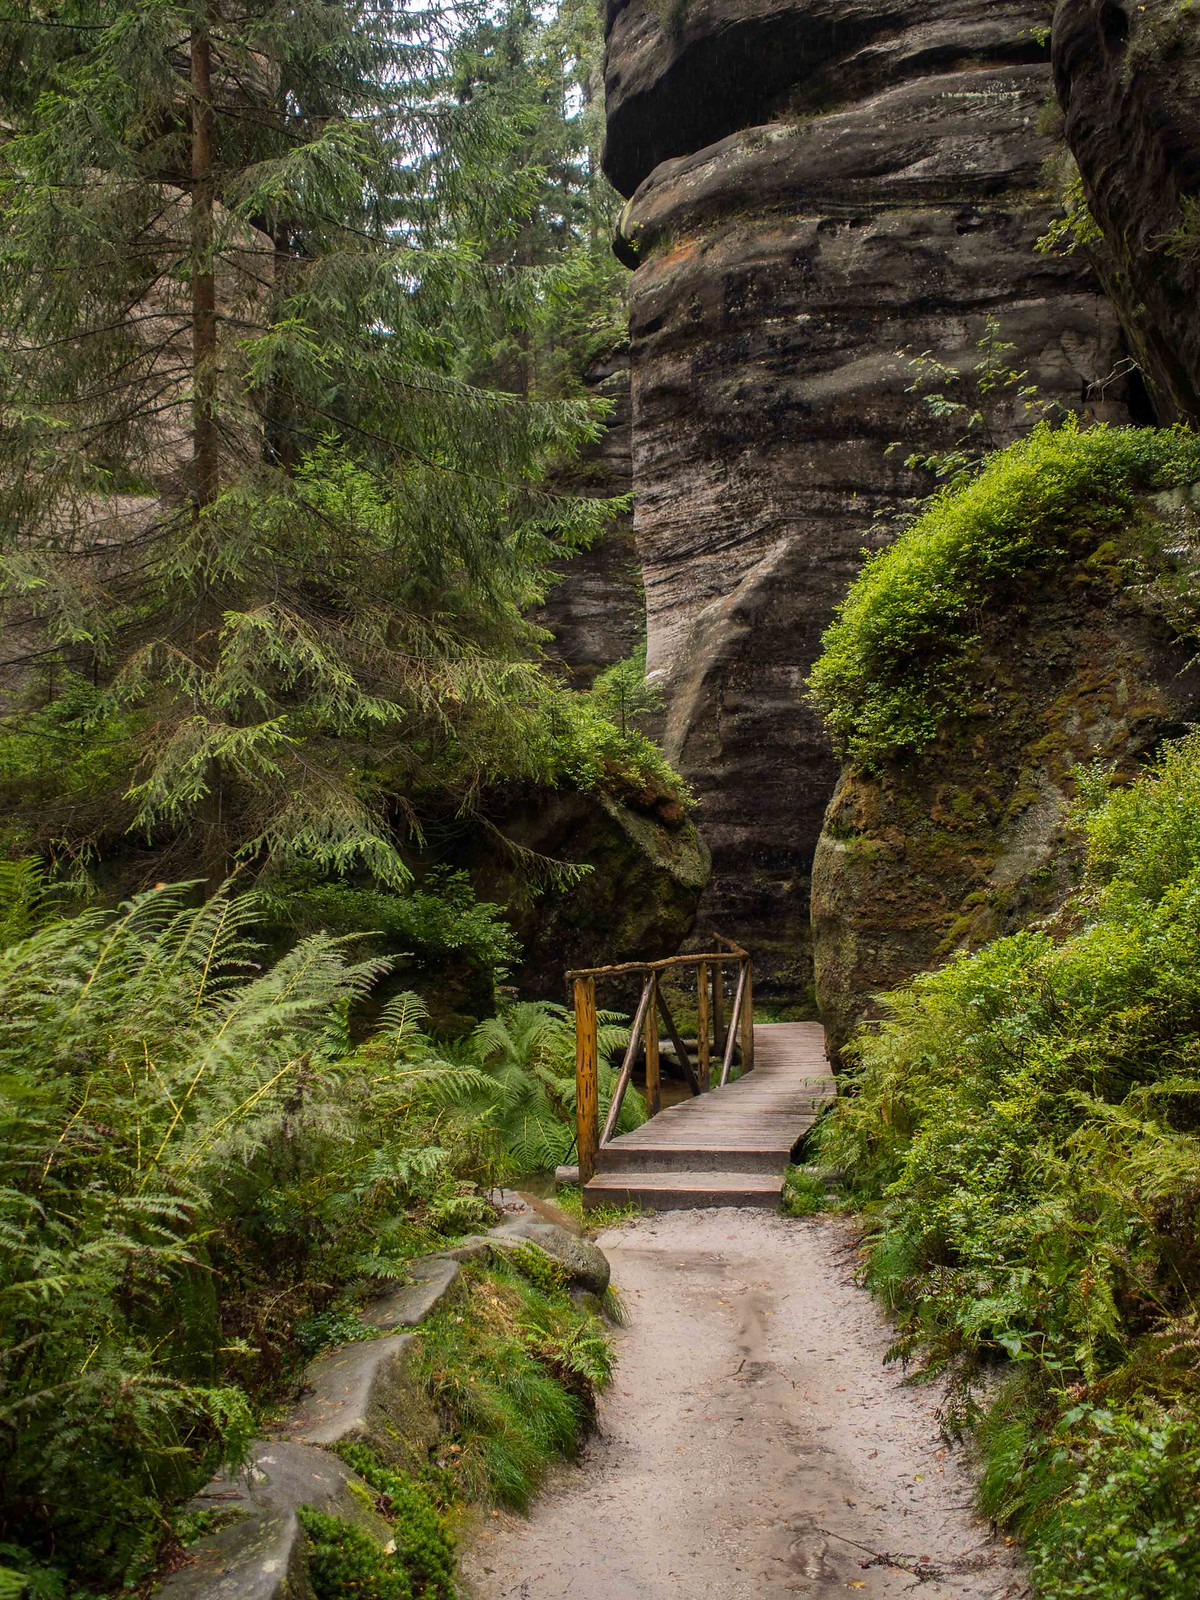 Hiking Czech Republic — Hidden Rock Towns Beyond the Reality | Live now – dream later travel blog